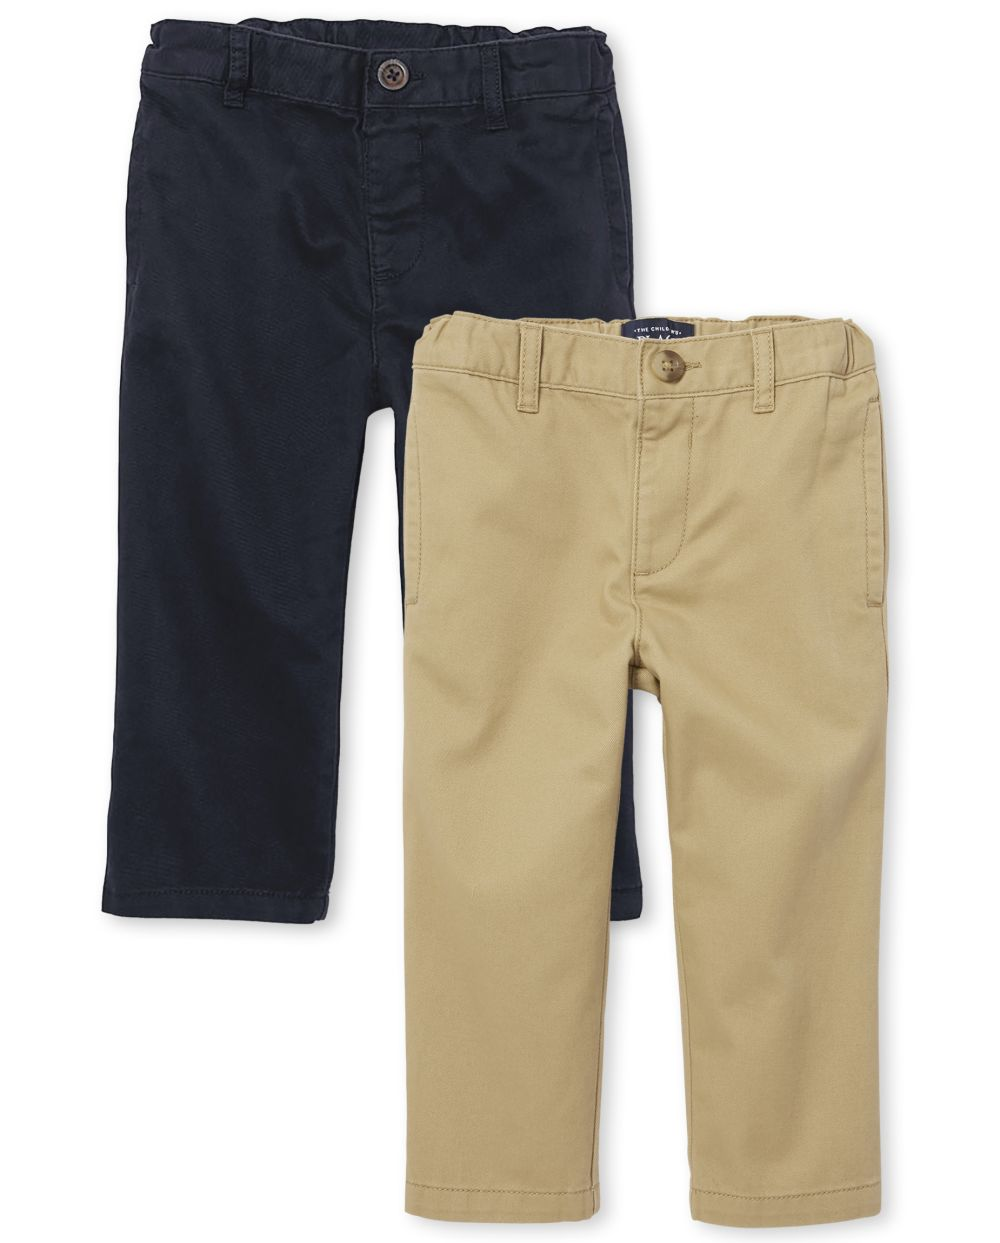 Baby And Toddler Boys Stretch Skinny Chino Pants 2-Pack - Multi